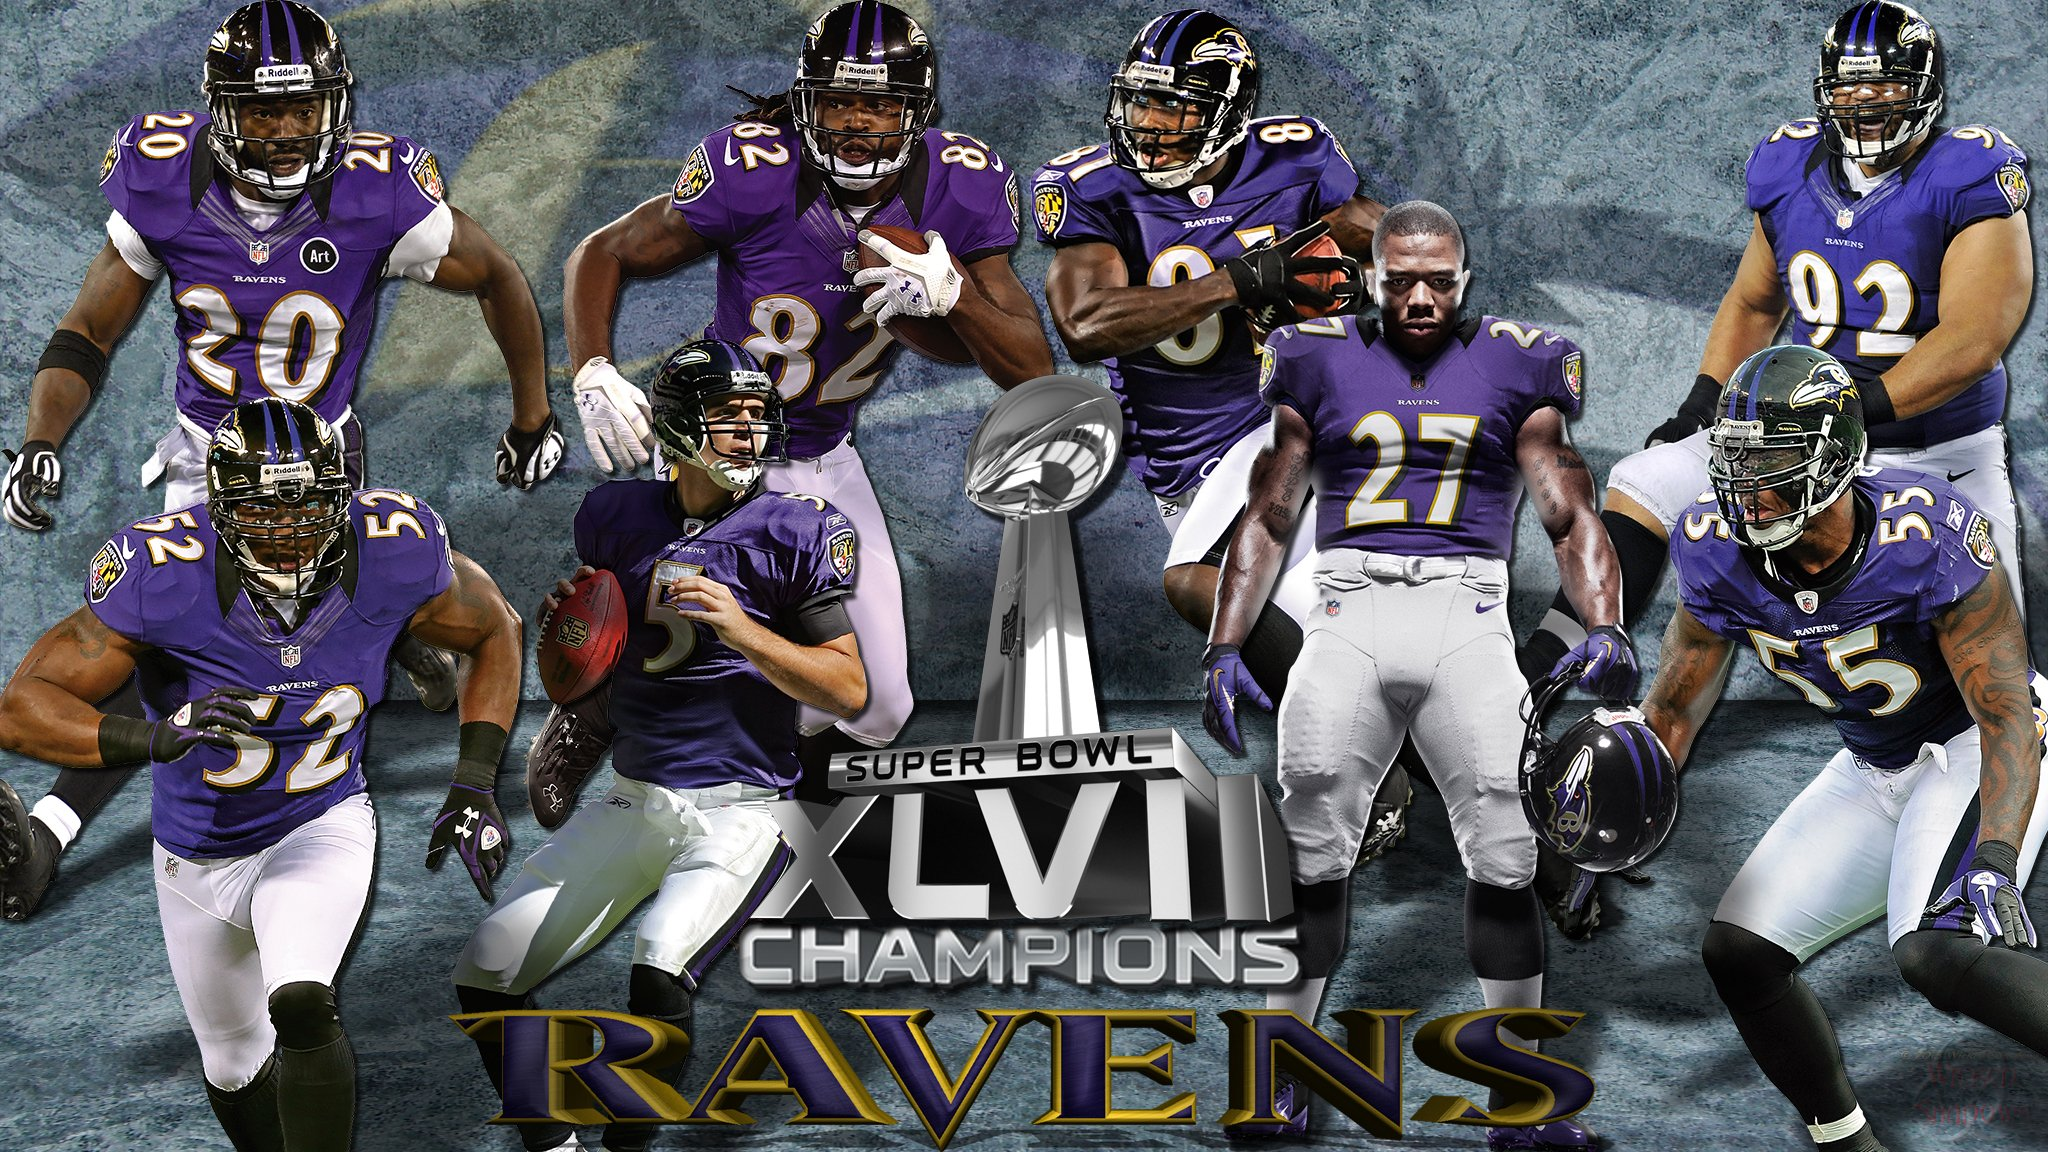 Wallpapers By Wicked Shadows Baltimore Ravens Super Bowl XLVII 2048x1152